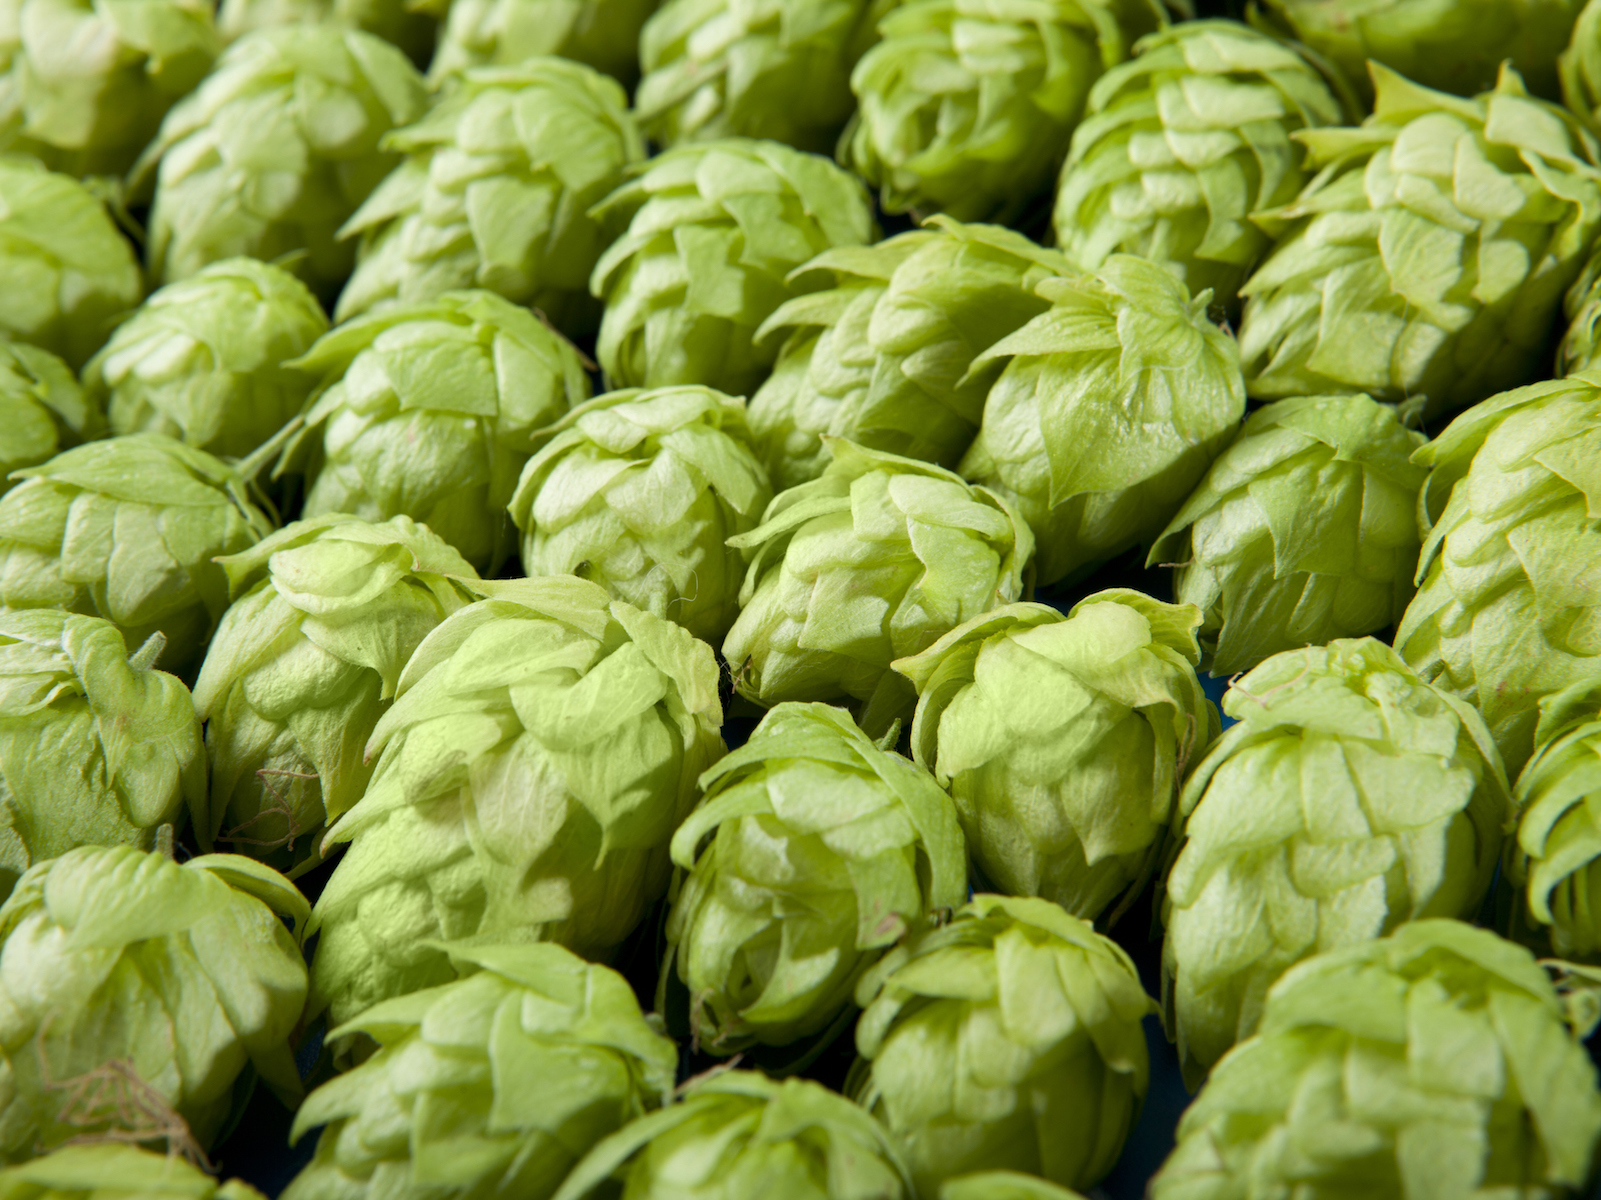 hops-year-round-arizona-FT-BLOG0119.jpg